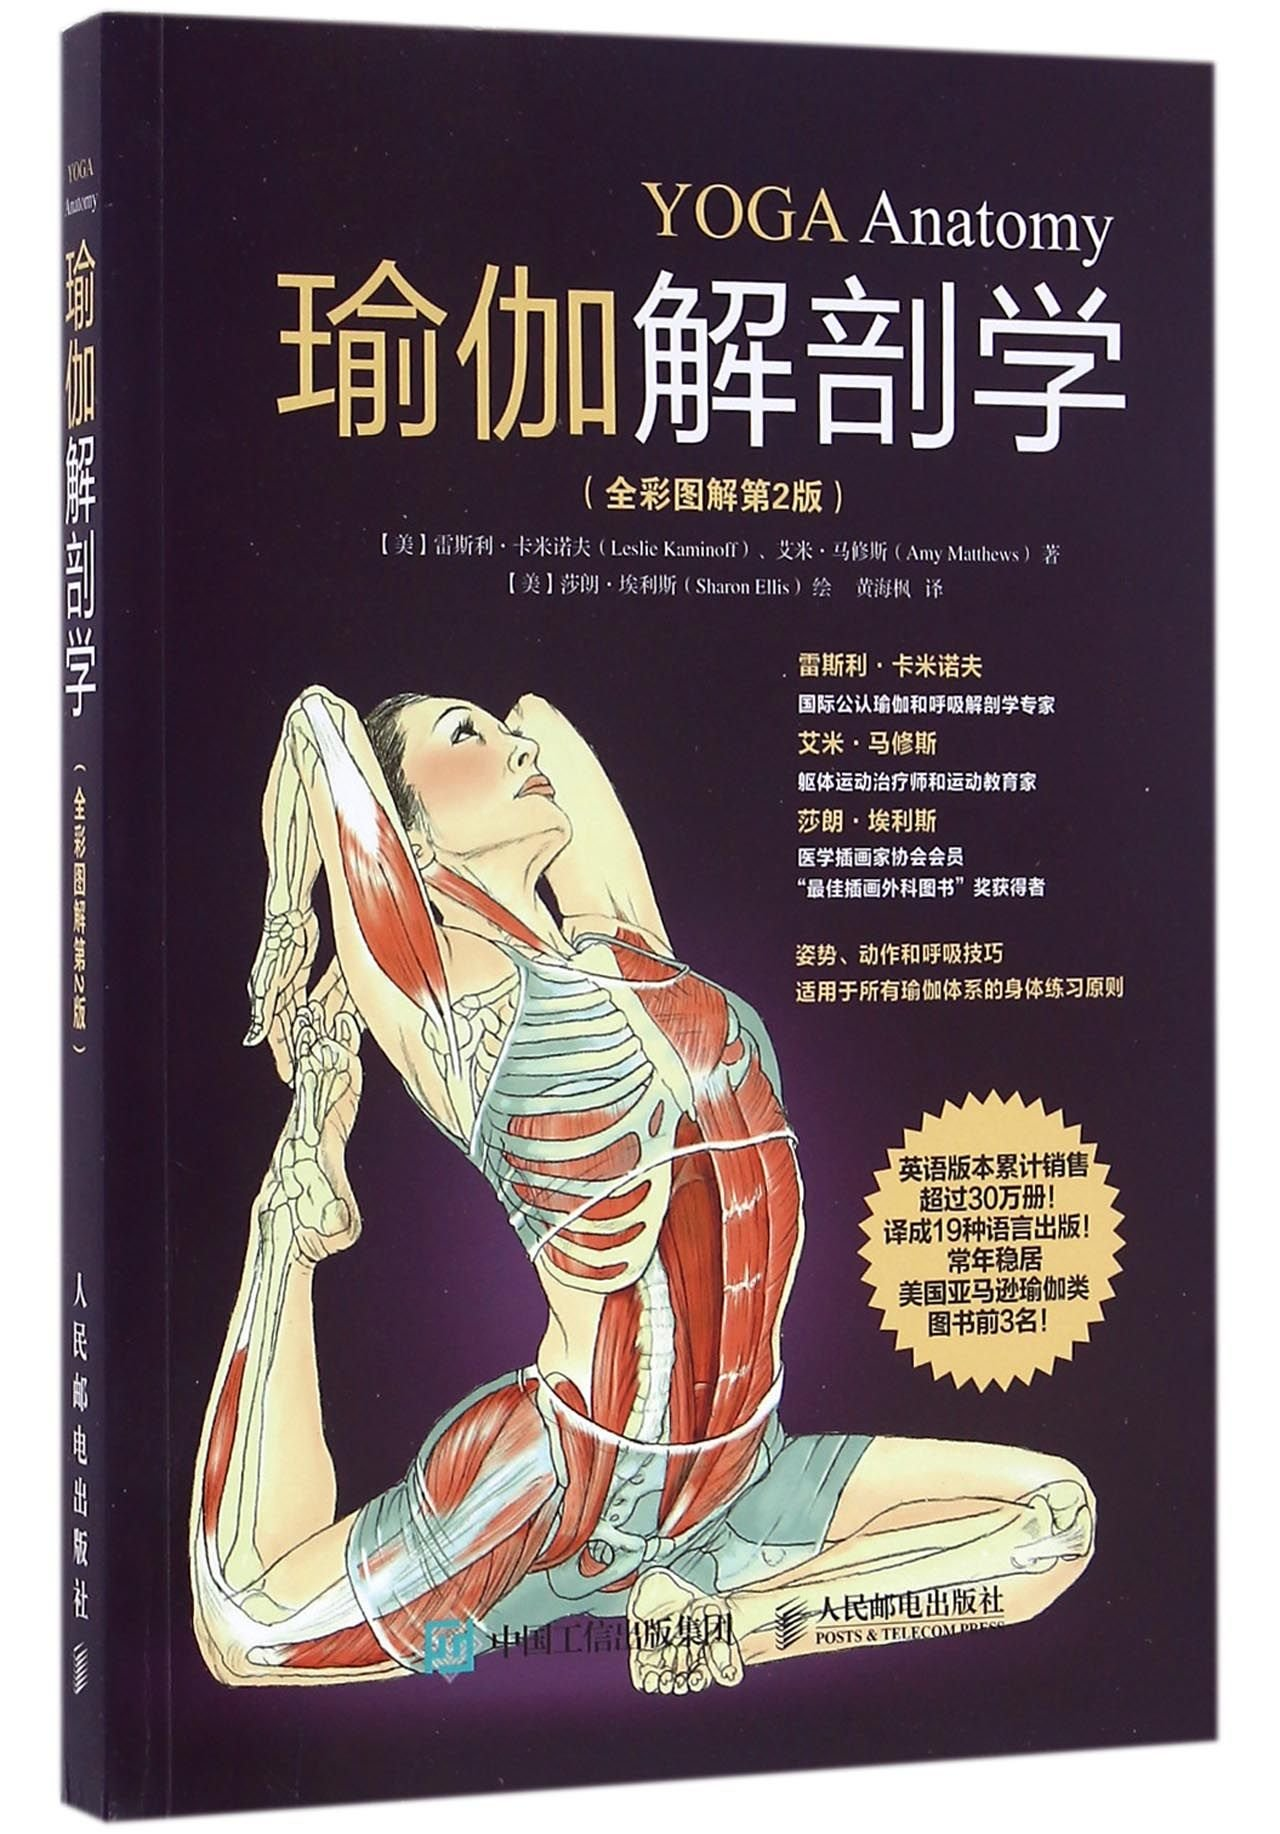 Yoga Anatomy-2nd Edition (Chinese Edition): Amy Matheus ...